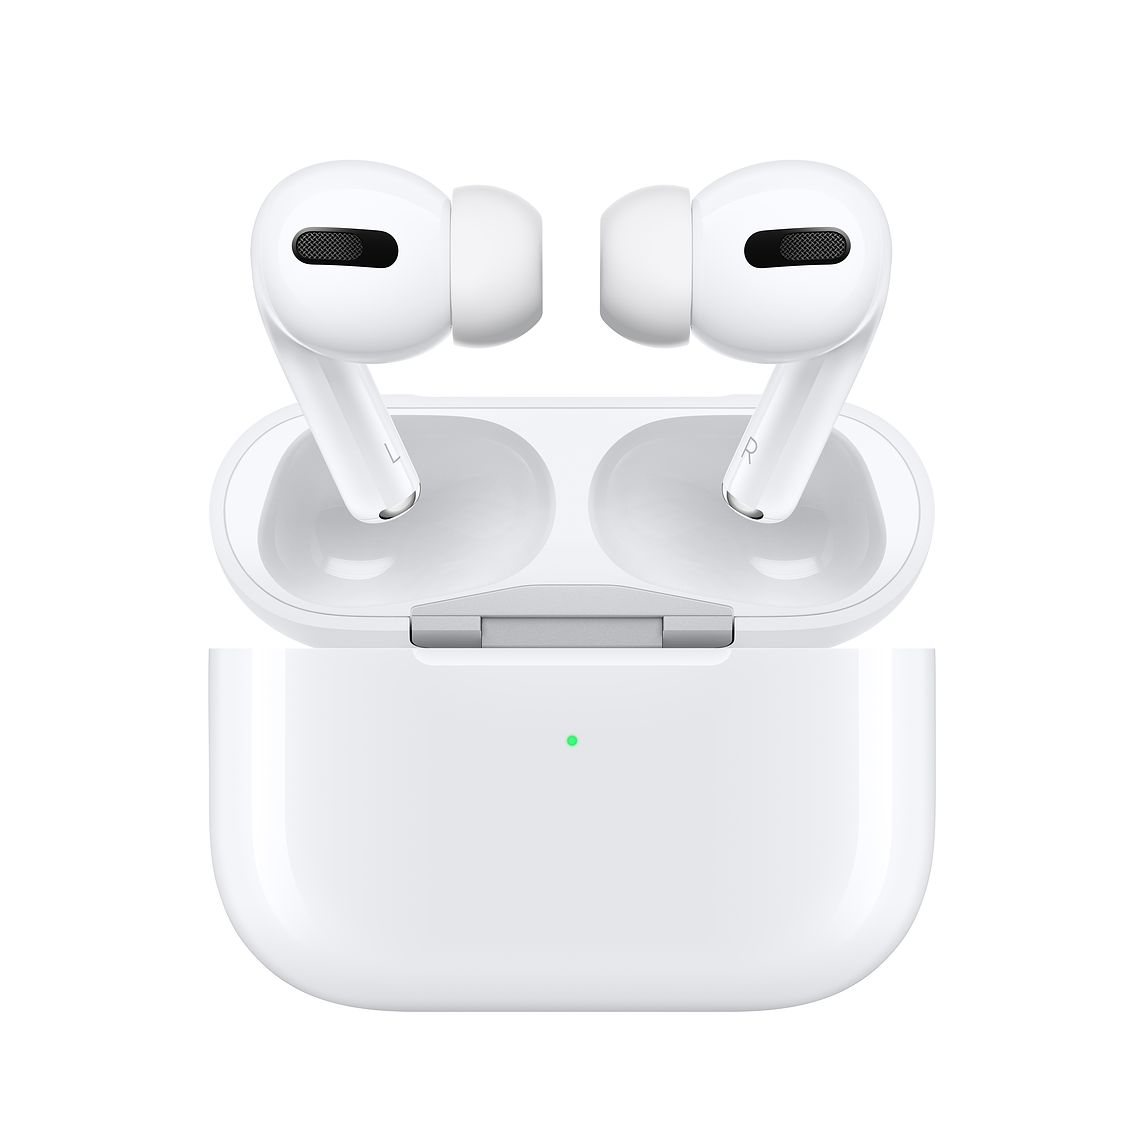 Apple releases new AirPods Pro